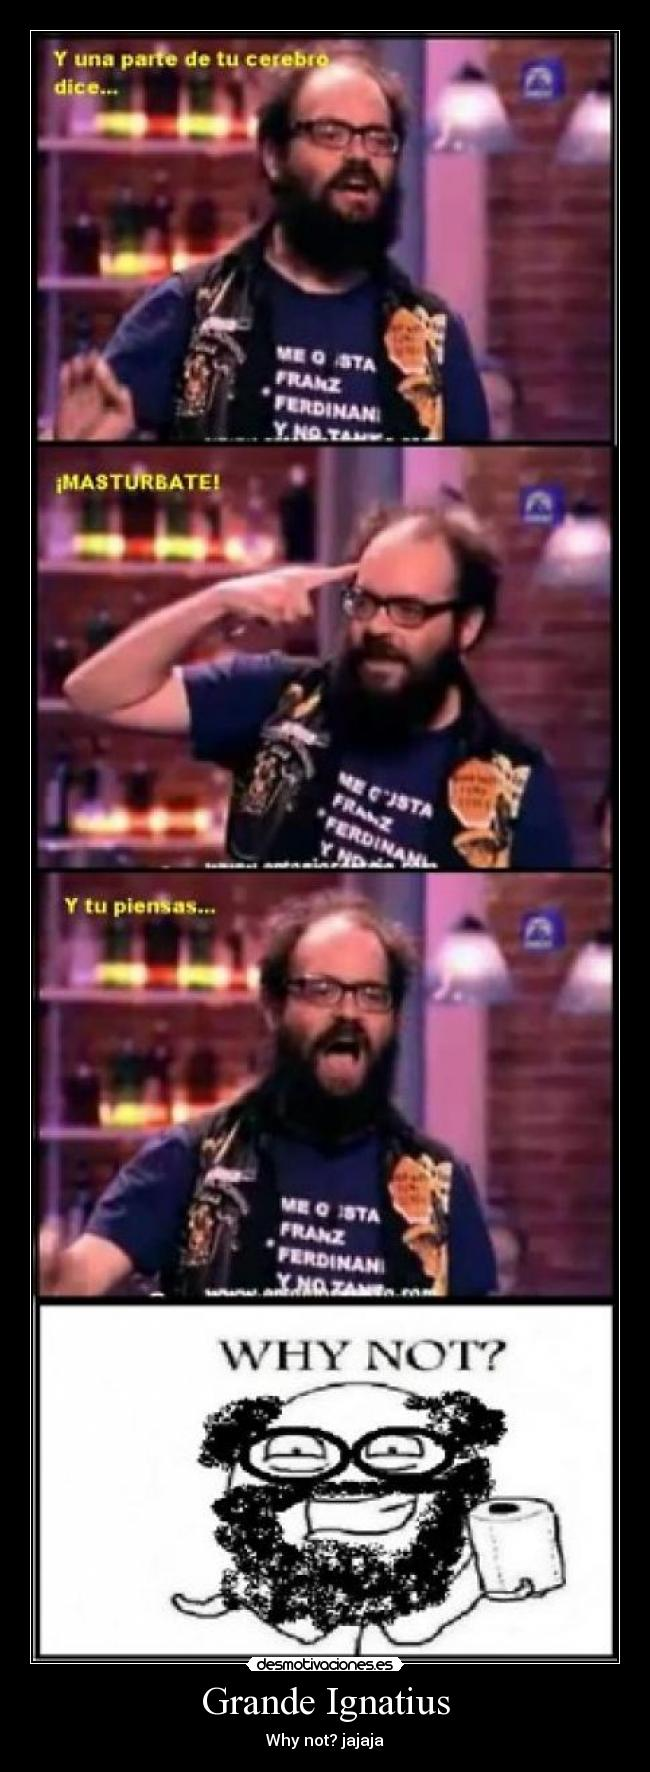 Grande Ignatius - Why not? jajaja